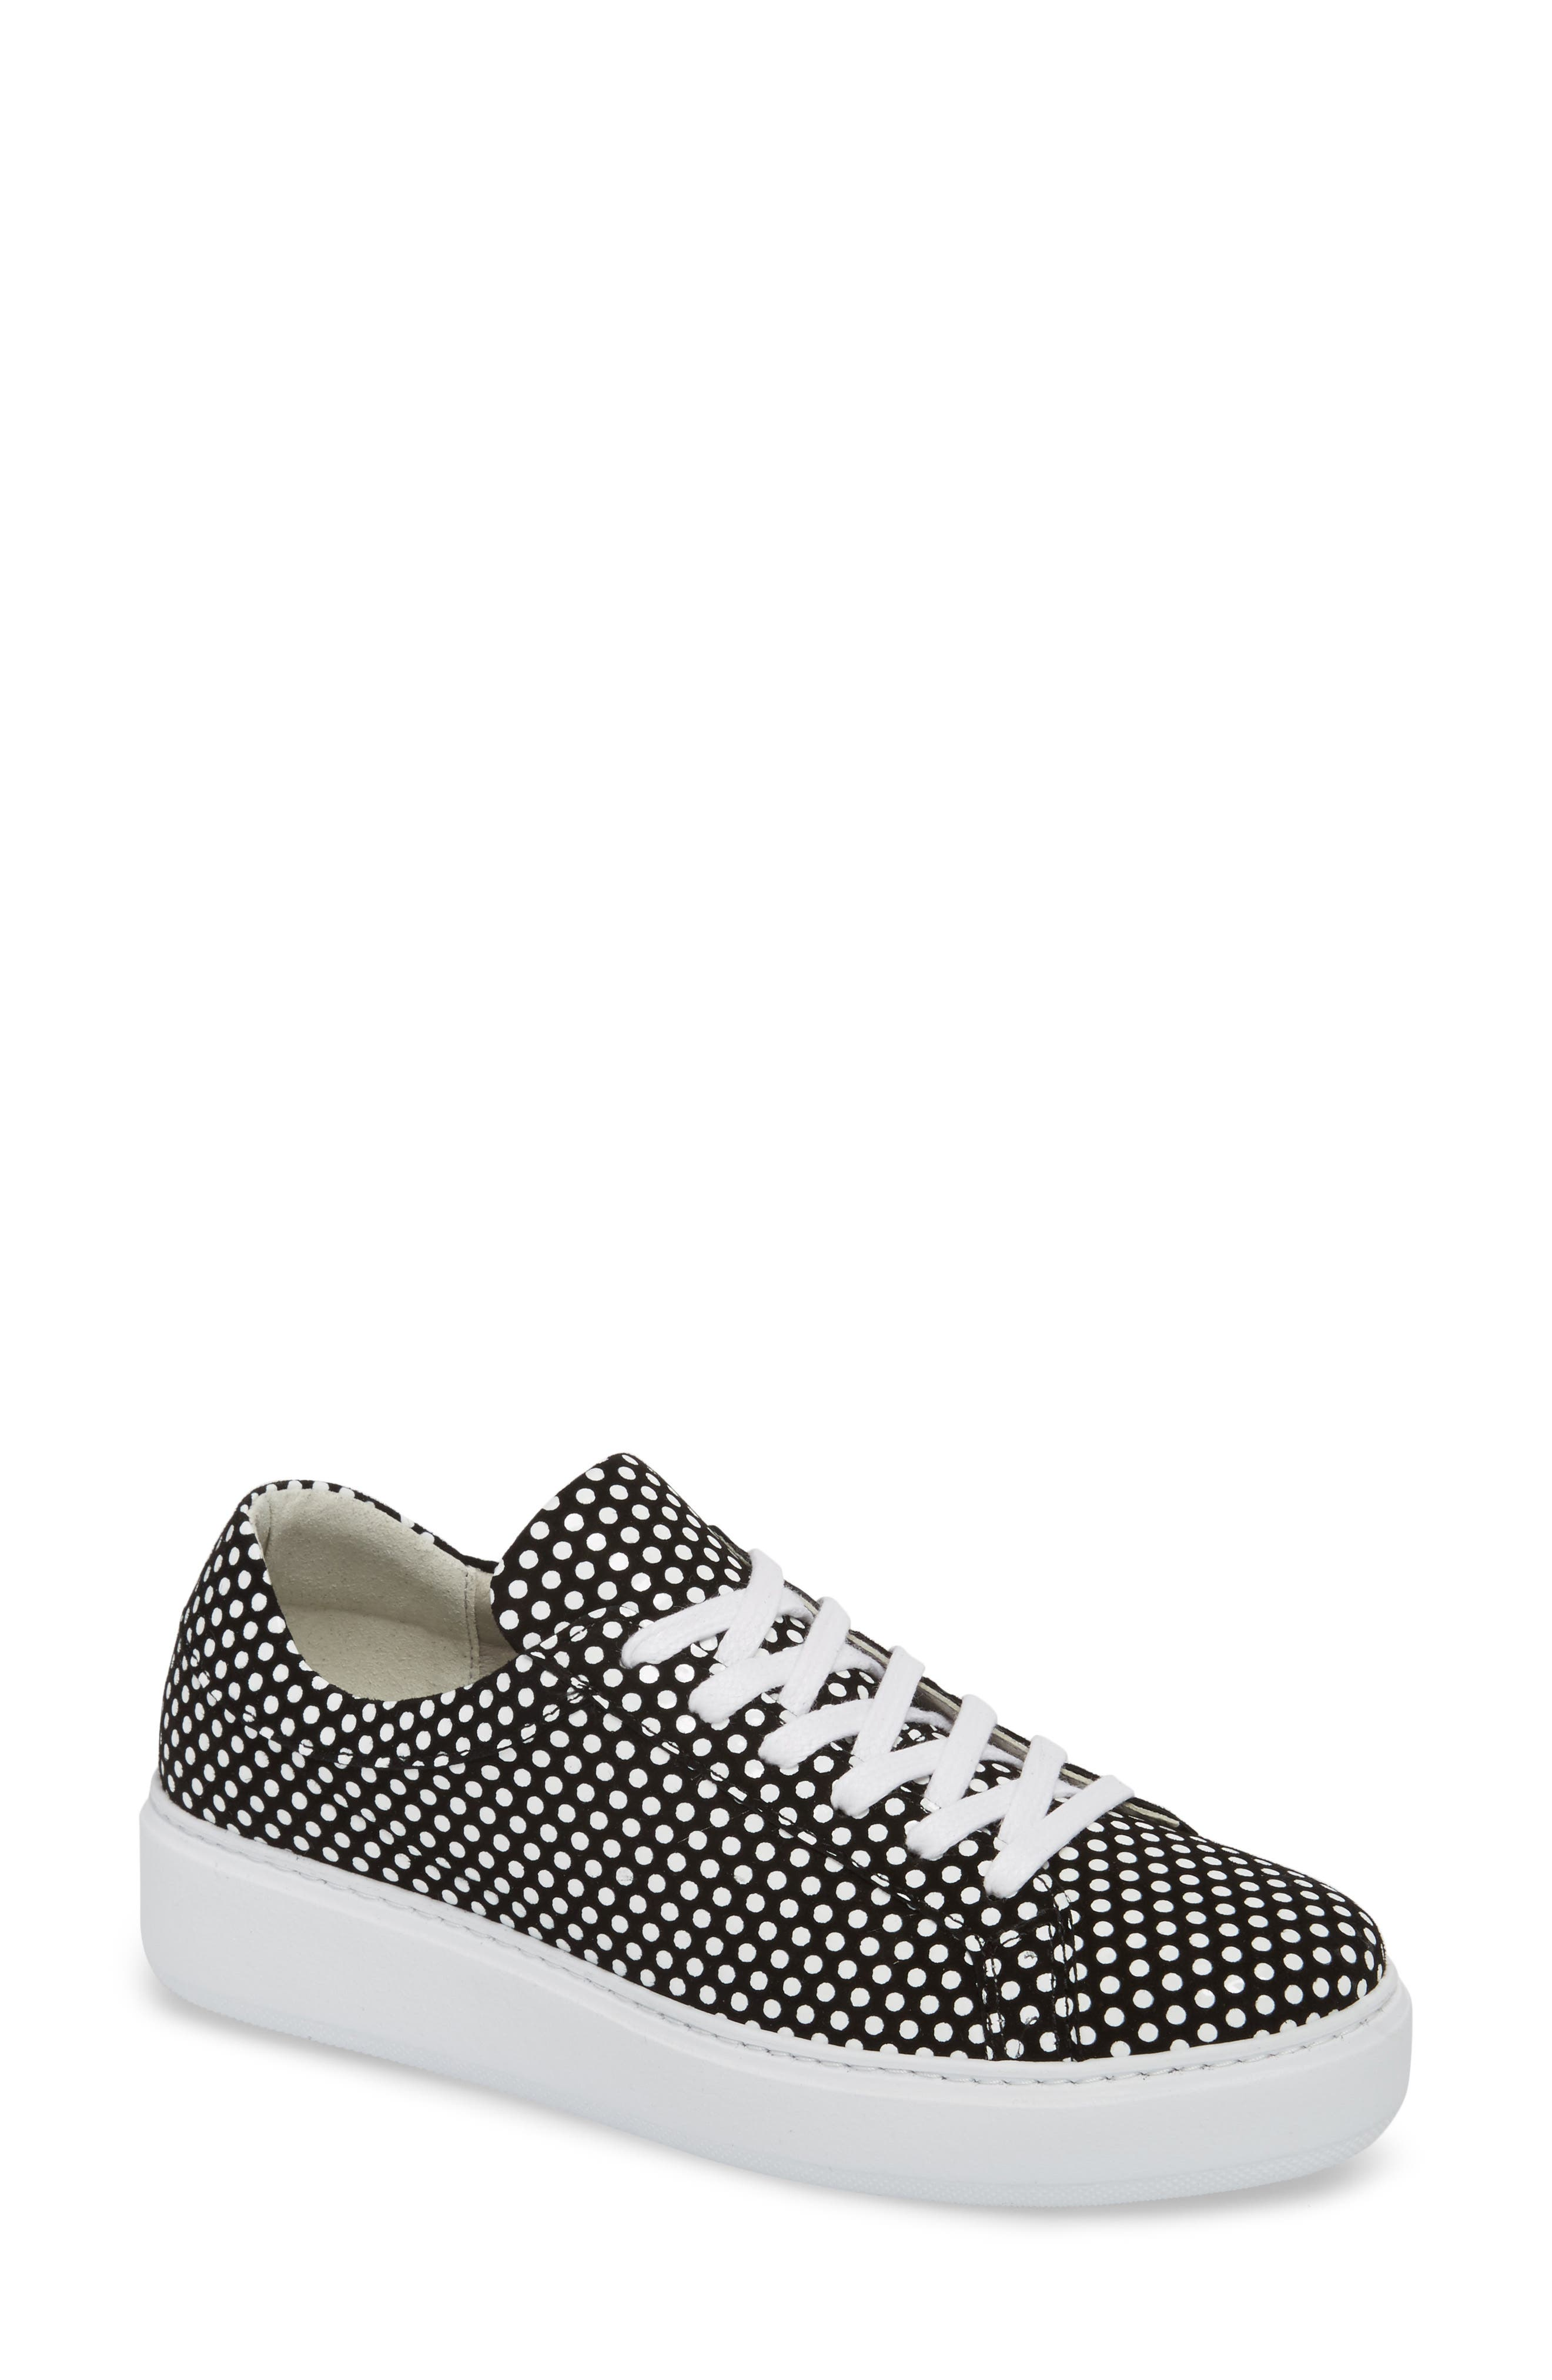 Tully Sneaker,                             Main thumbnail 1, color,                             POP SUPREME LEATHER